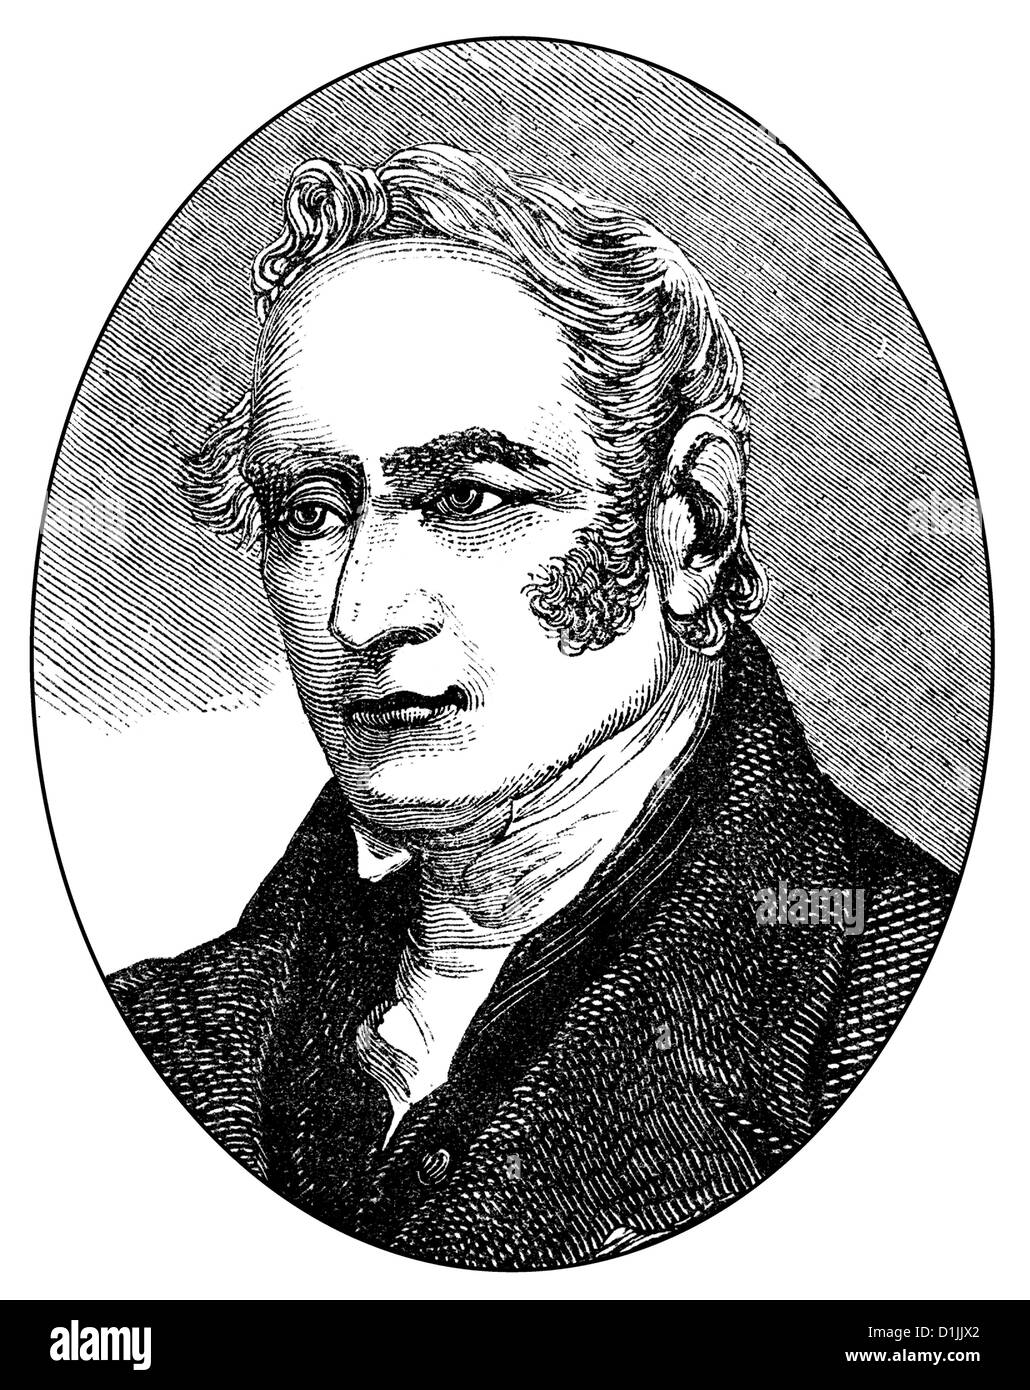 George Stephenson, 1781 - 1848, an English engineer and principal founder of the railroad industry, - Stock Image